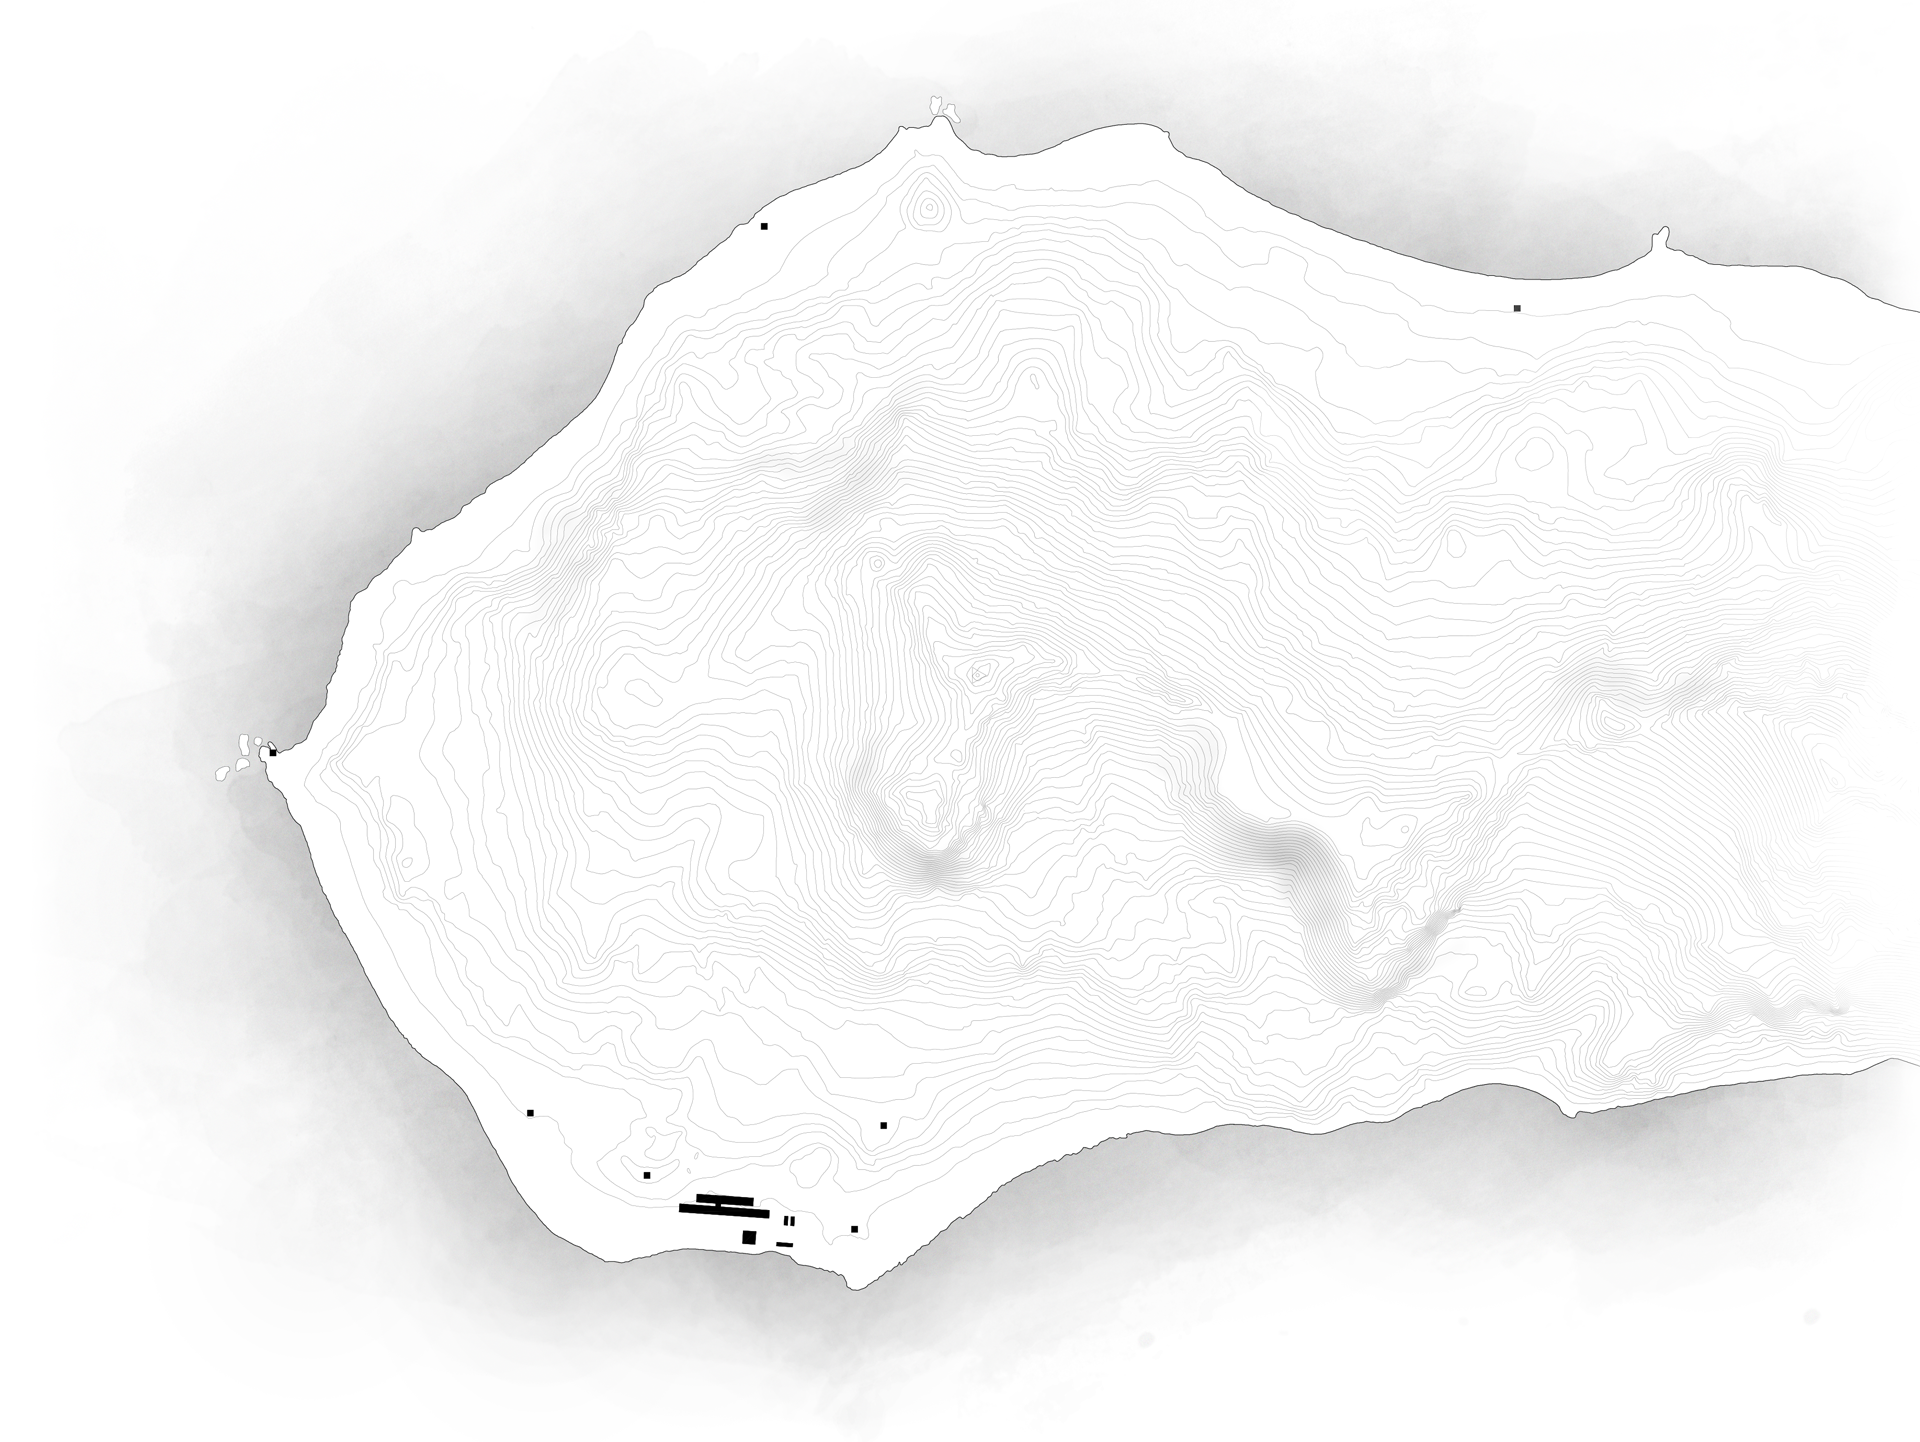 Topographic map of the Keller Peninsula, highlighting scale of the station